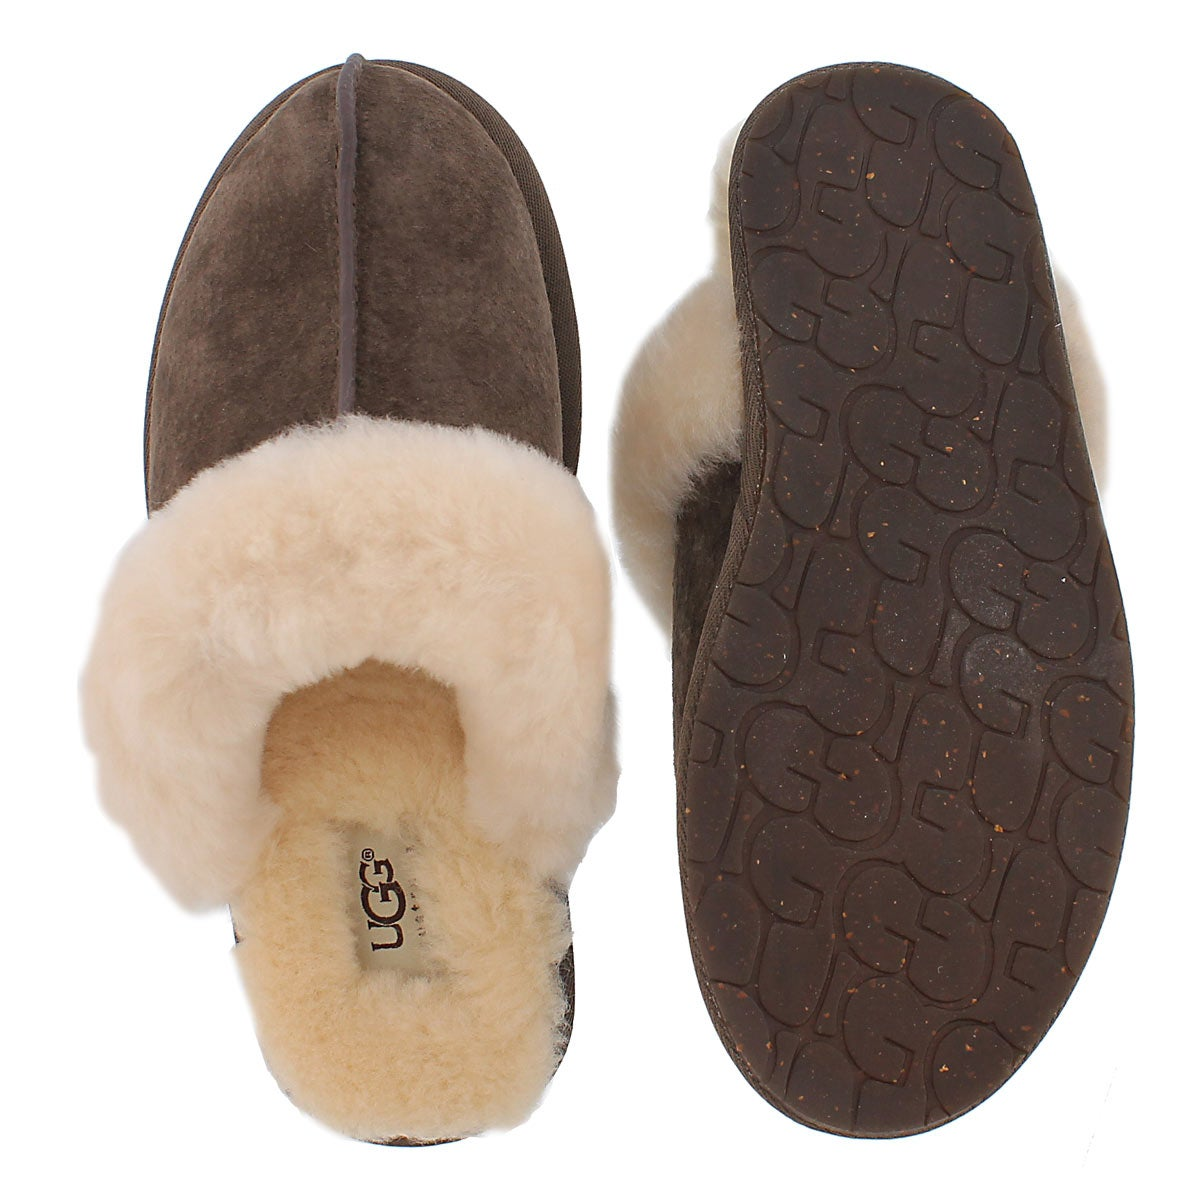 Lds Scuffette espresso sheepskin slipper